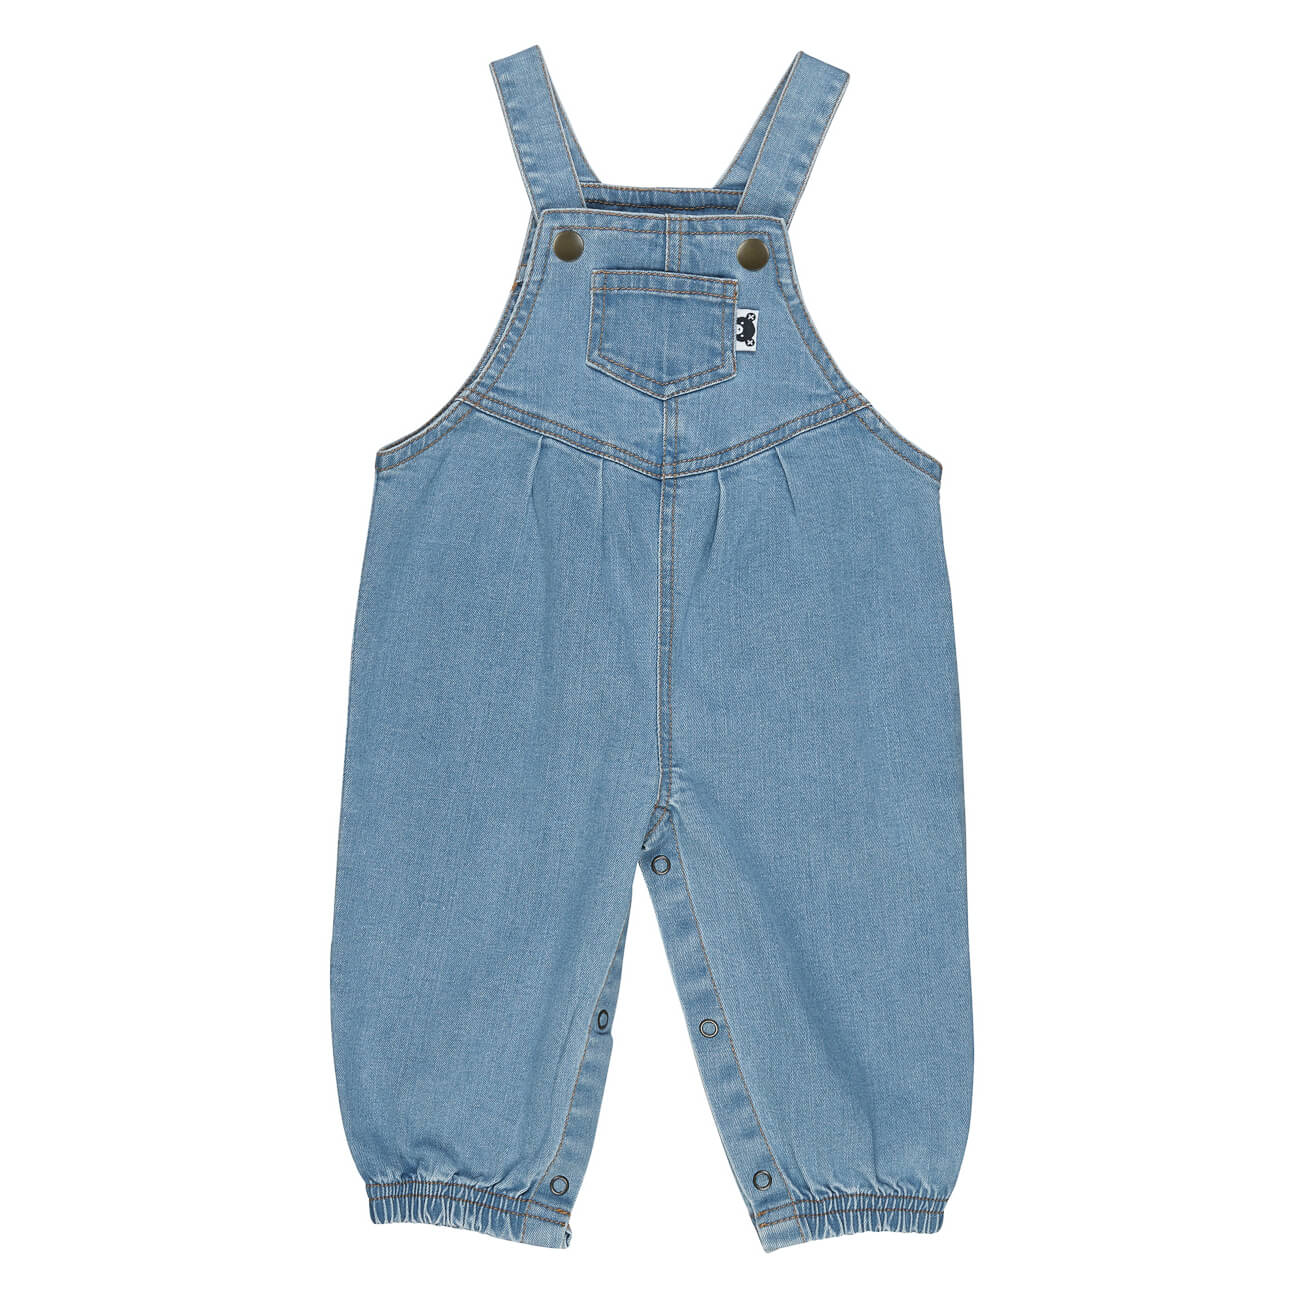 Huxbaby Denim Overalls | Tiny People